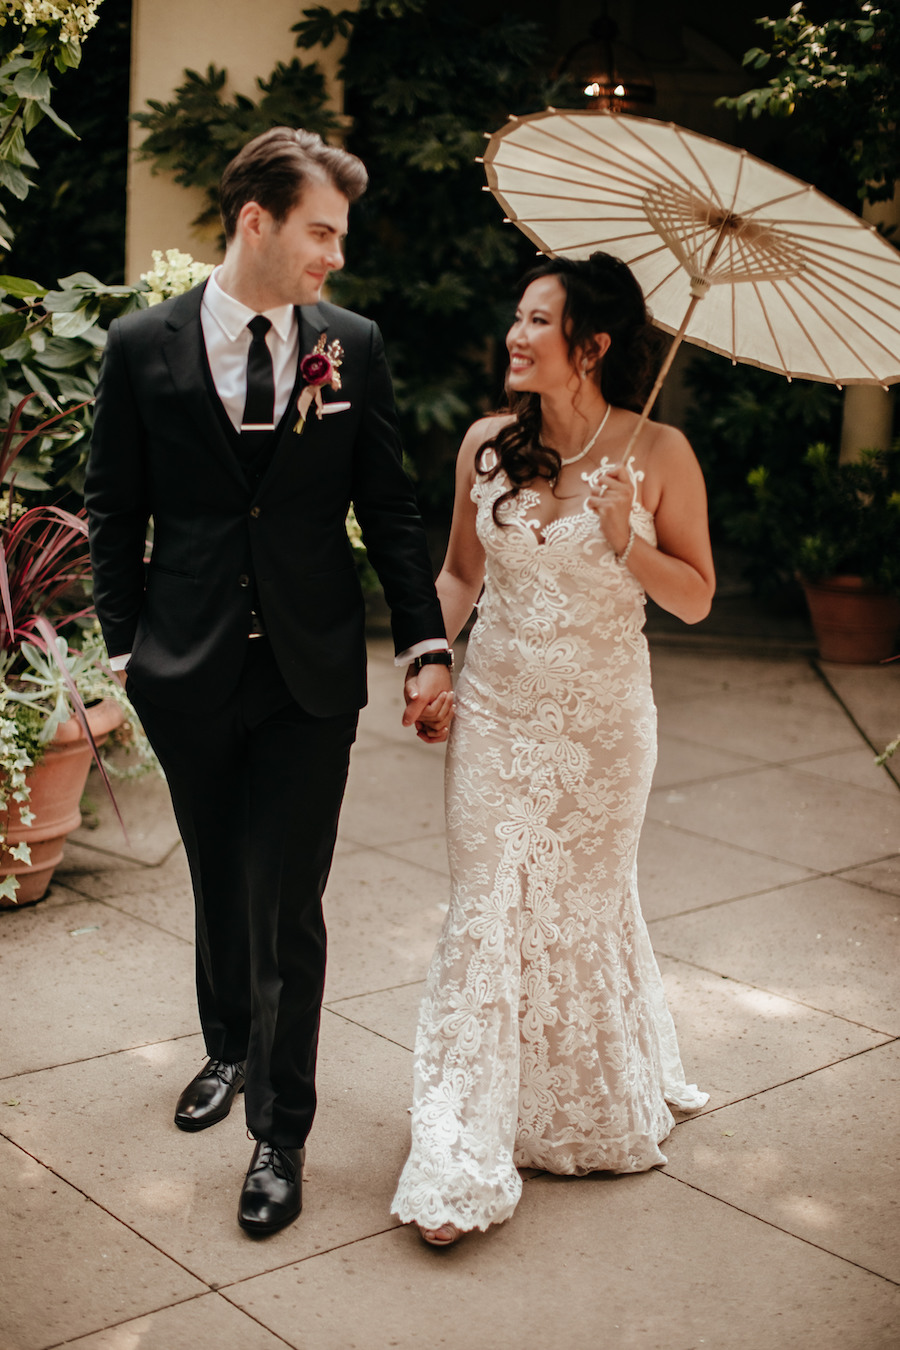 Jennifer and Jared's Chic Copper-Toned Wedding at Chateau St. Jean4.jpg